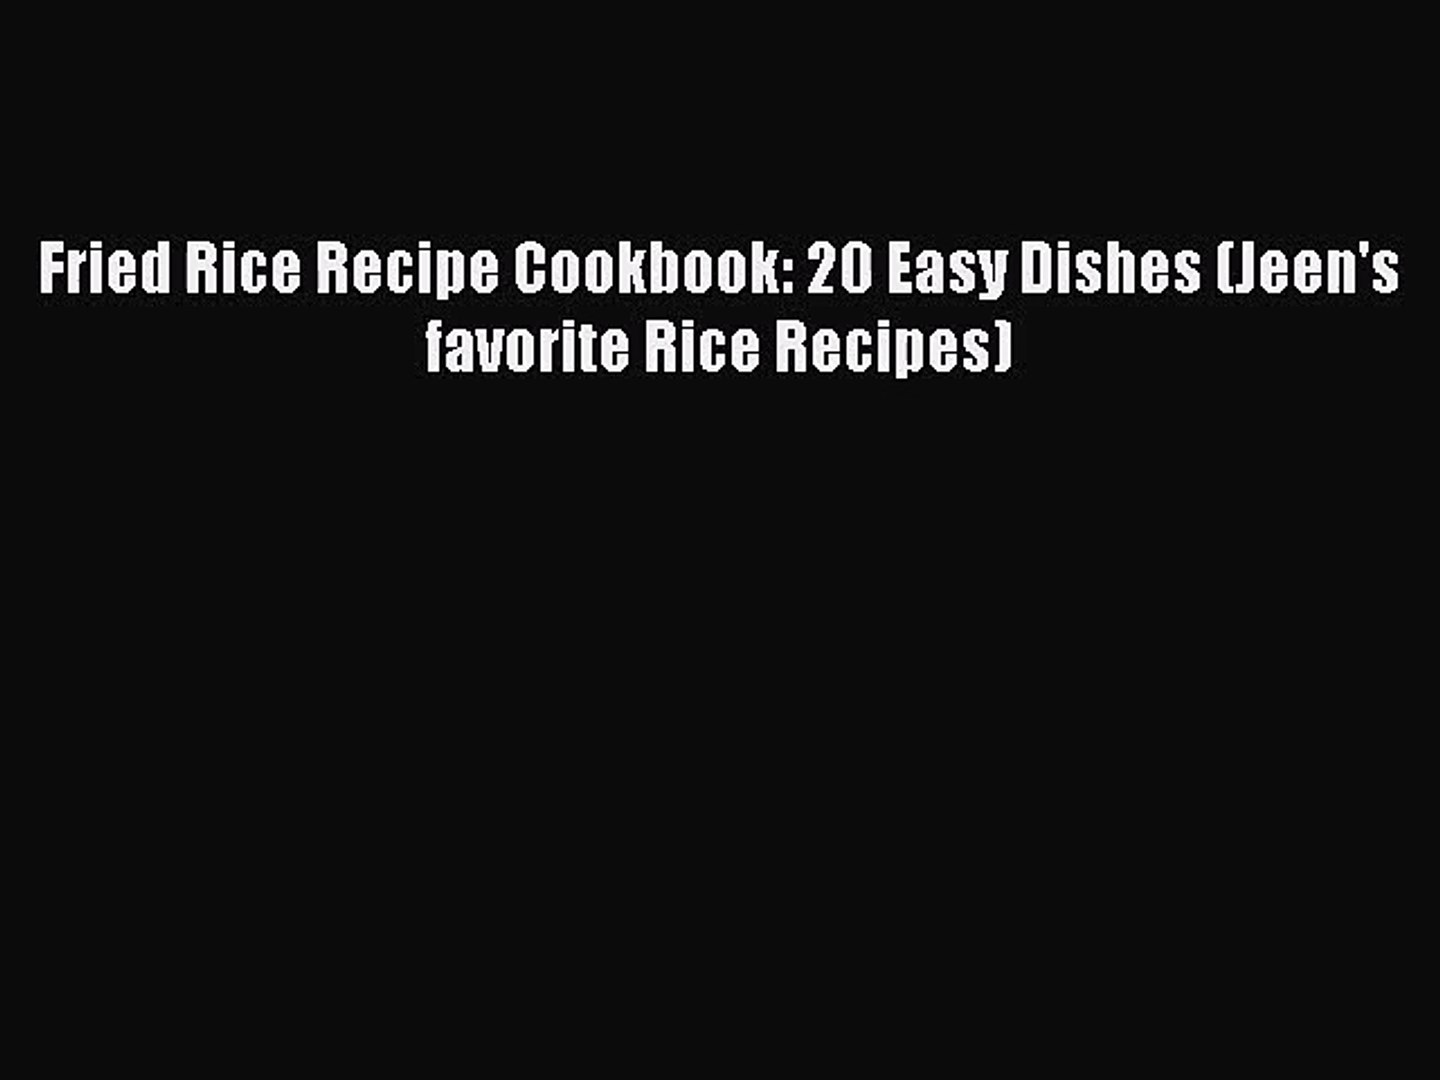 PDF Download Fried Rice Recipe Cookbook: 20 Easy Dishes (Jeen's favorite Rice Recipes) Read